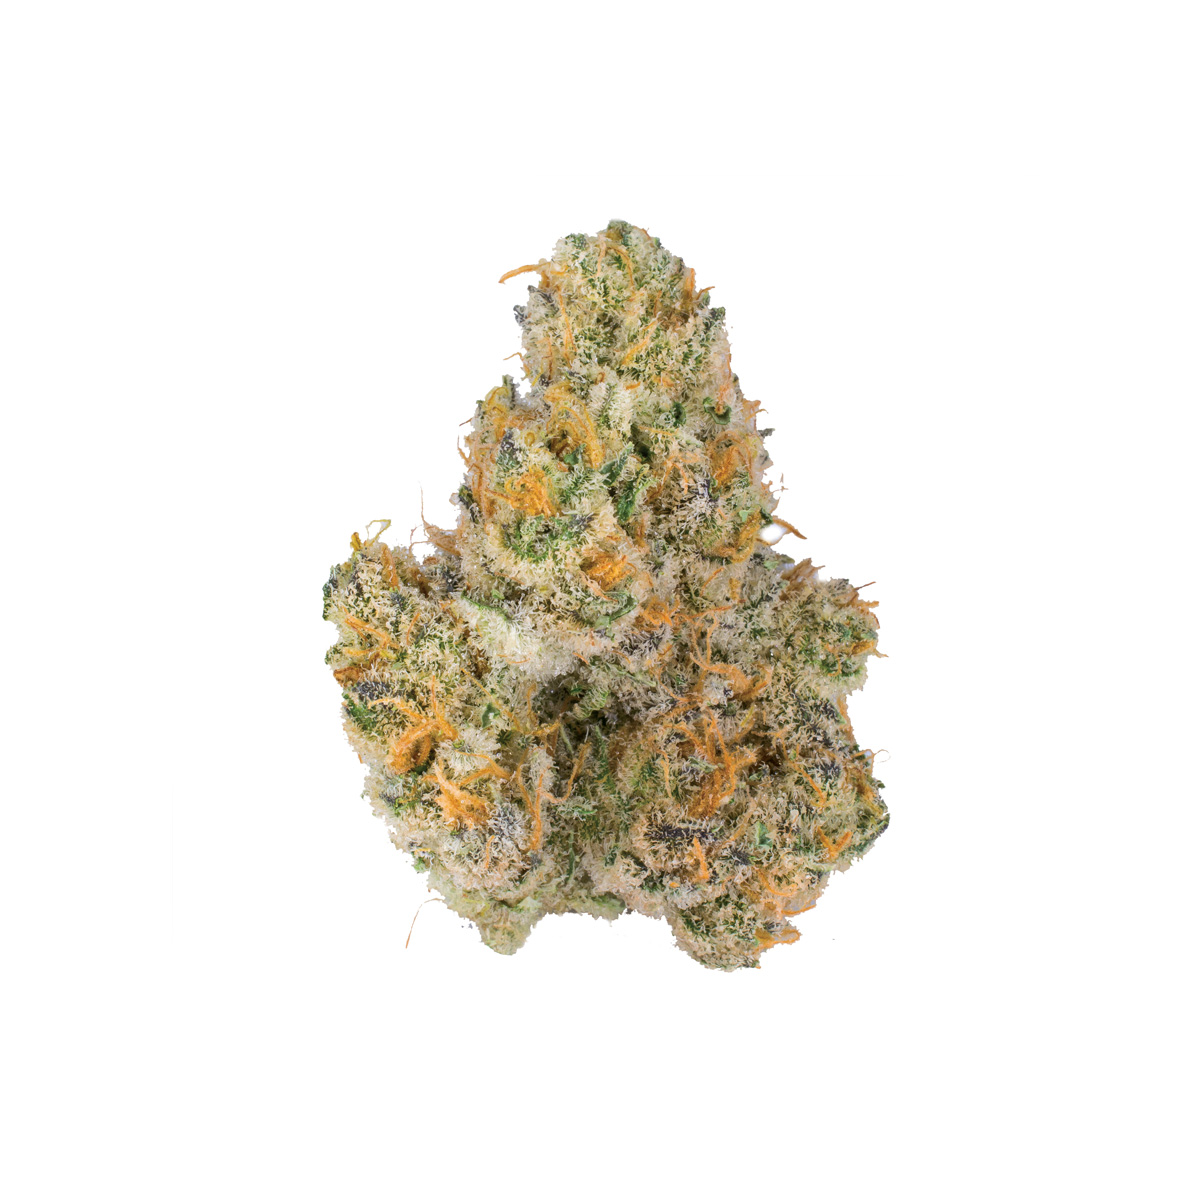 pine drop - Sativa Dominant Hybrid27.4% THC | .1 % CBDOriginally bred by TGA Genetics, Pine Drop is a clone-only phenotype of TGA's Chernobyl strain. A citrus-centric strain with star-studded parental lineage, Pine Drop is a Sativa-dominant hybrid that offers long-lasting cerebral effects. Perfect for washing away afternoon lethargy or a day of stress, consumers can expect a serious attitude adjustment and boost of creative energy with every use.